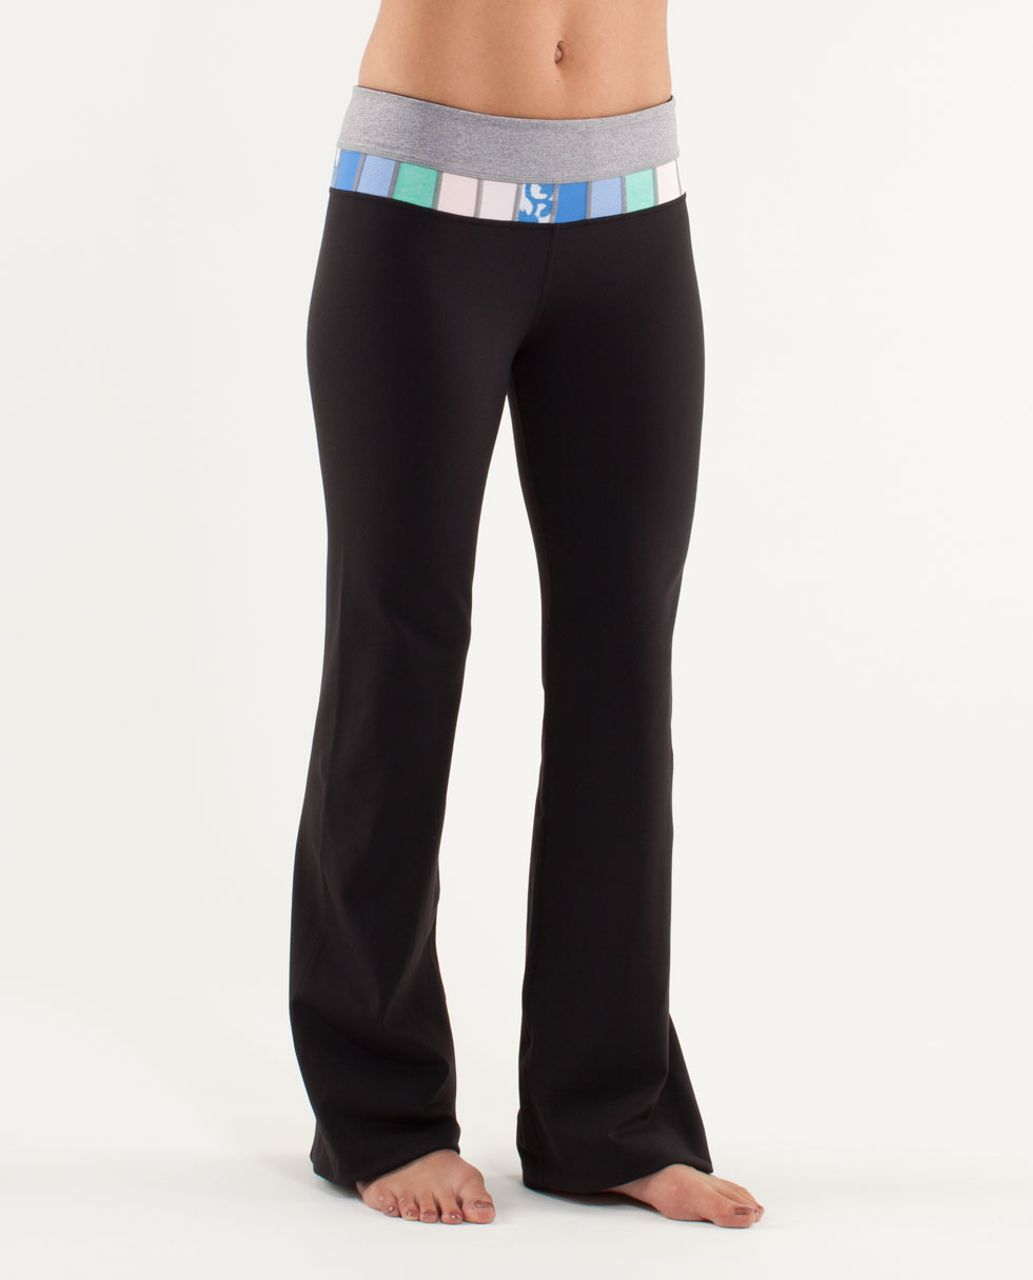 Lululemon Groove Pant (Tall) - Black /  Heathered Fossil /  Quilting Spring 21